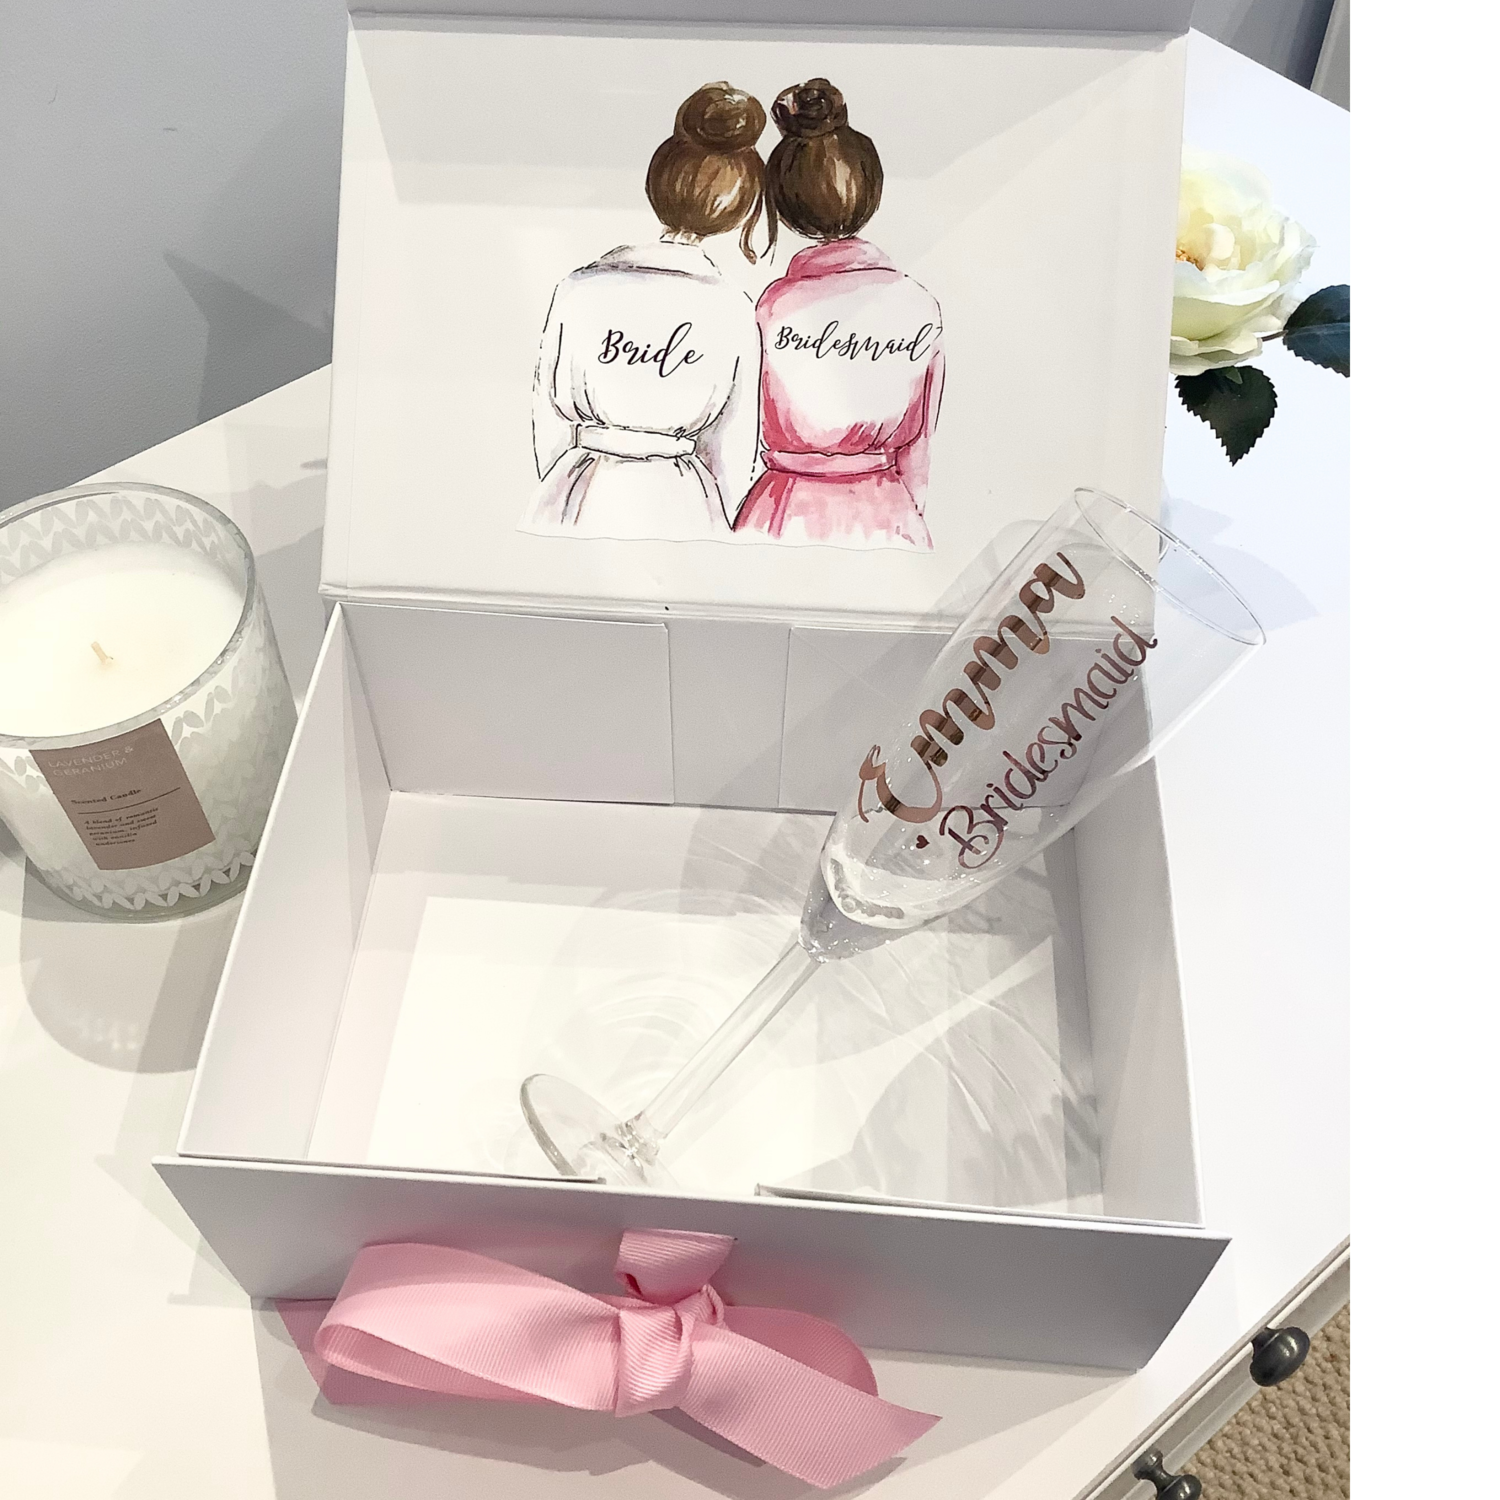 Bridesmaid picture ribbon tied gift box with champagne flute